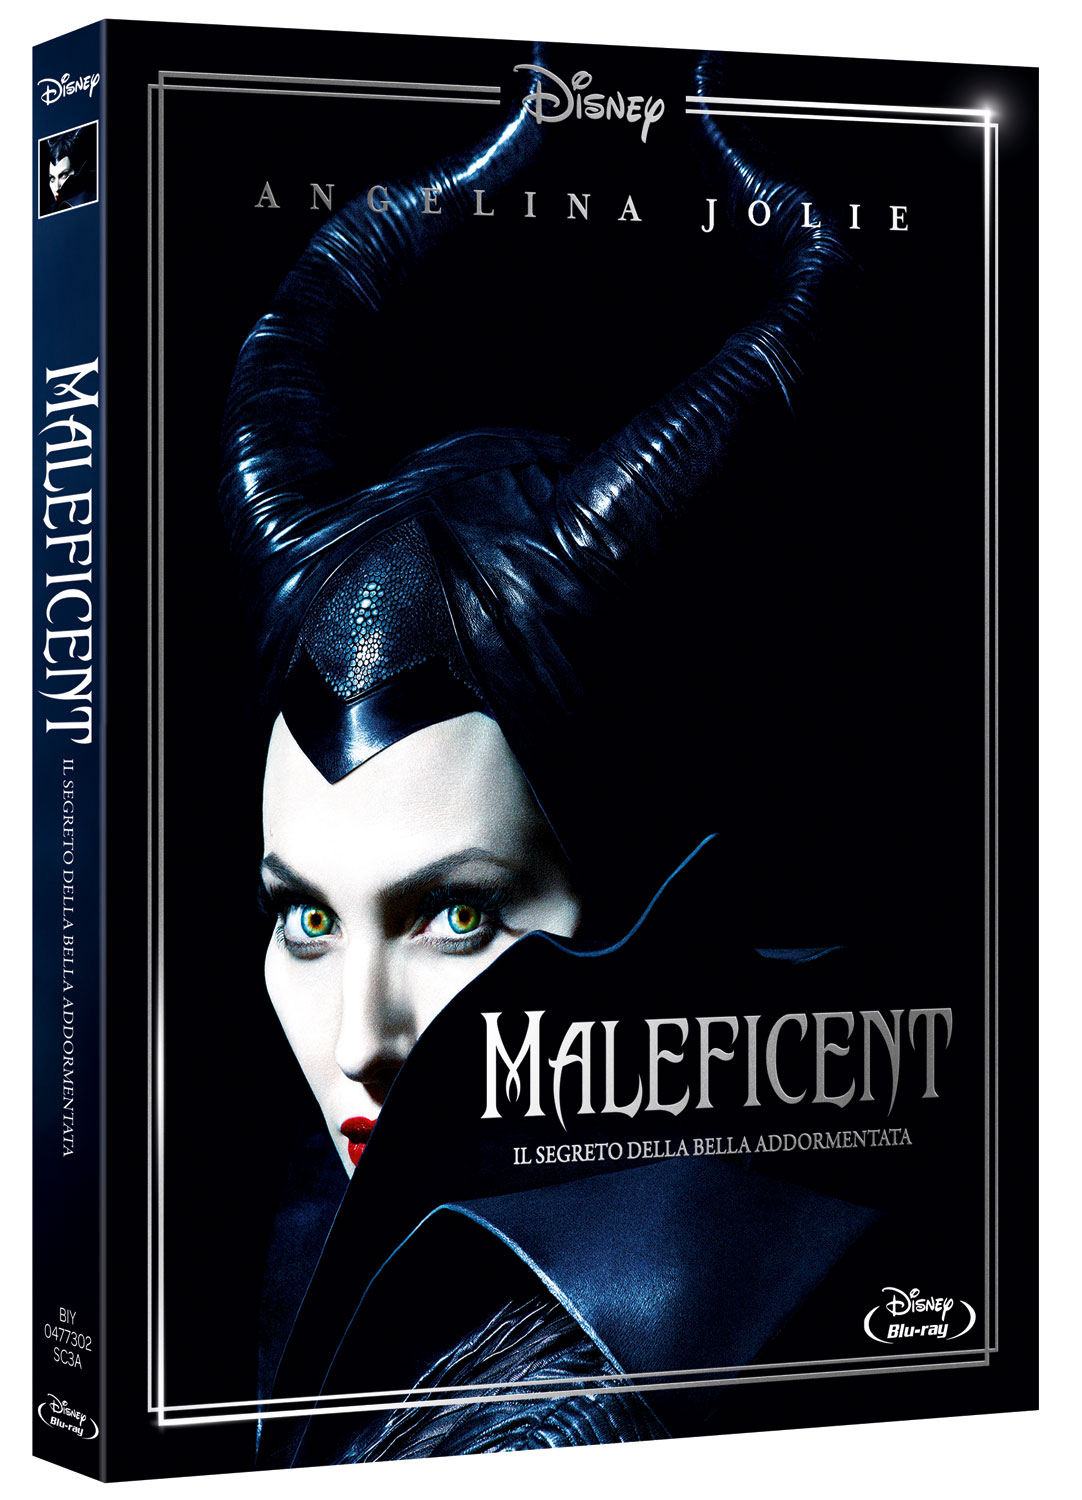 MALEFICENT (NEW EDITION) - BLU RAY